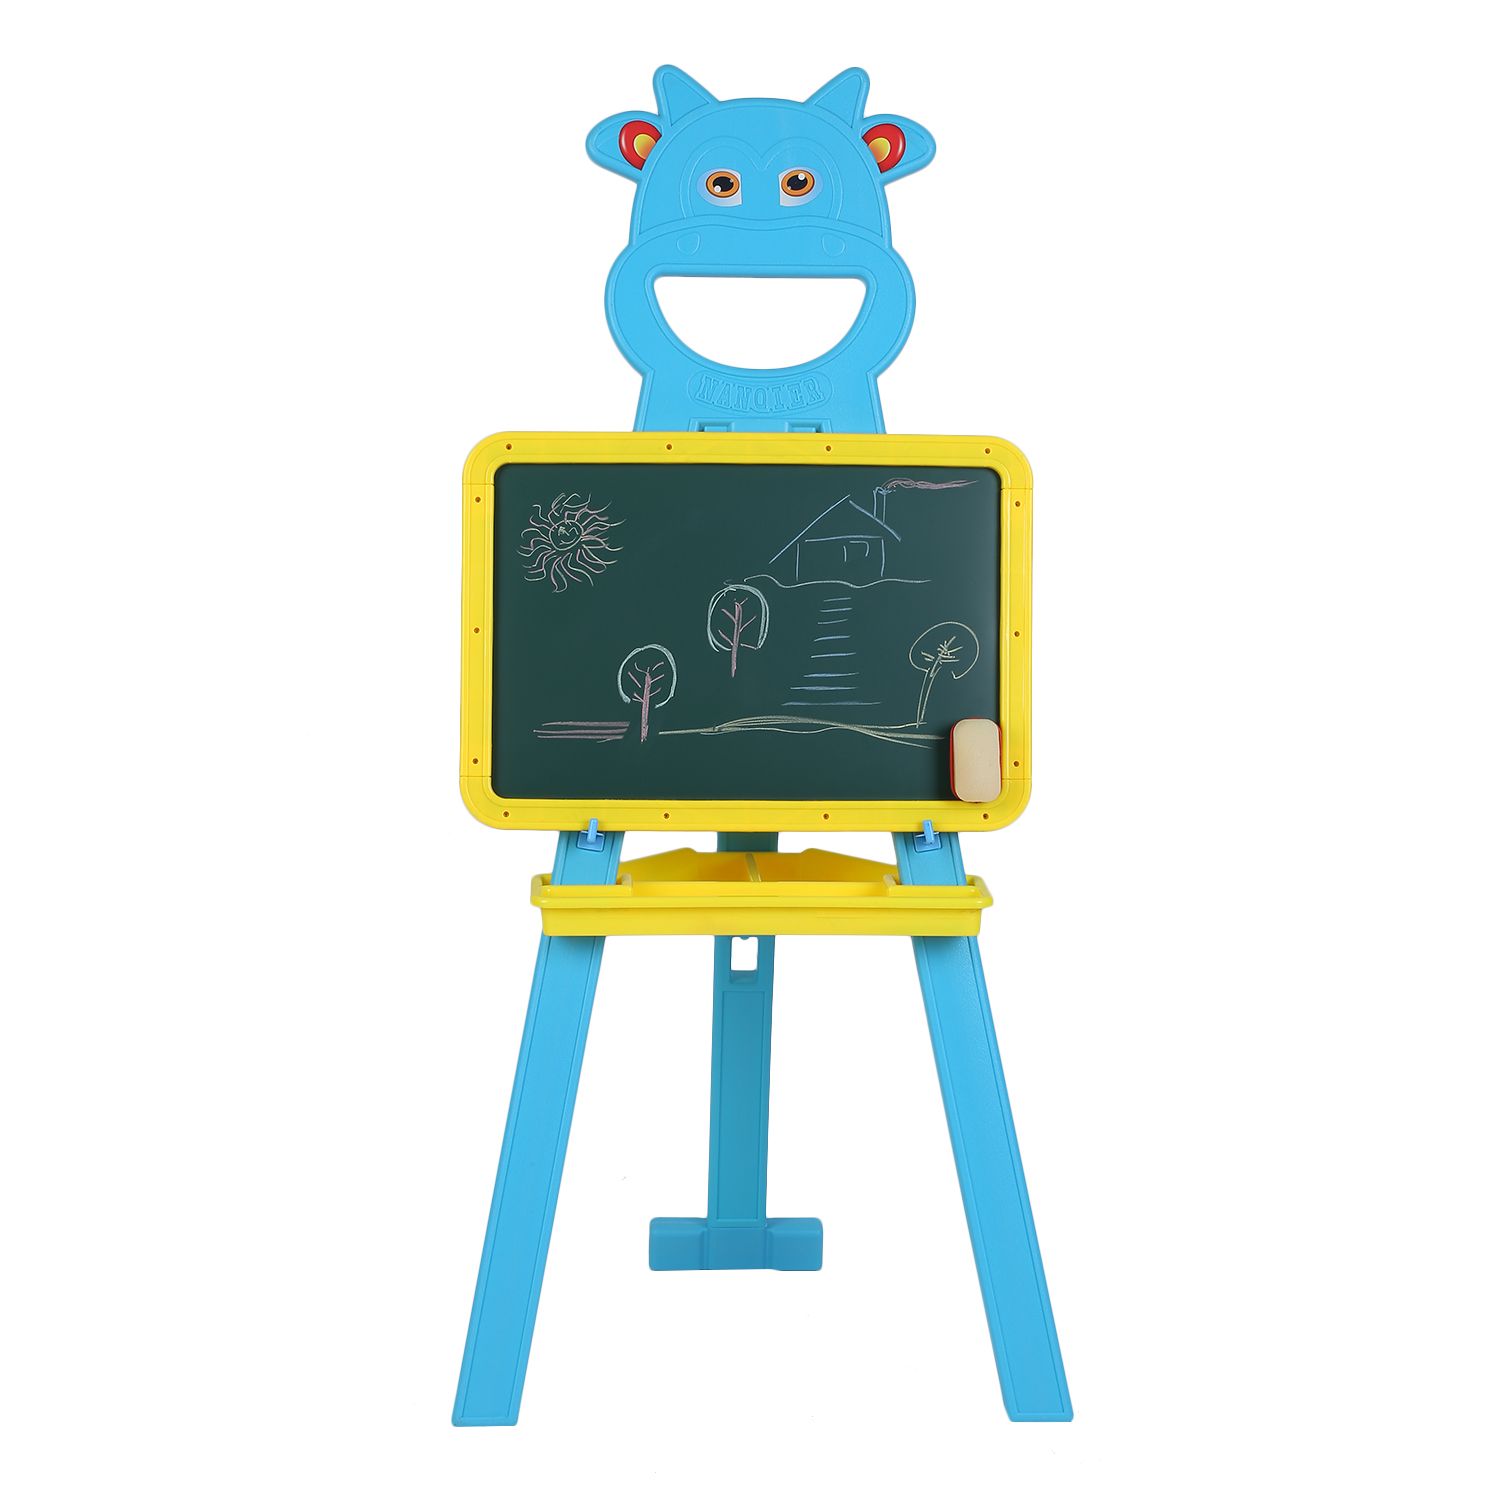 CNMODLE Children Kids Learning Drawing Practice Handwriting Board Height Adjustable Floor Stand Rack Bracket Educational Toy